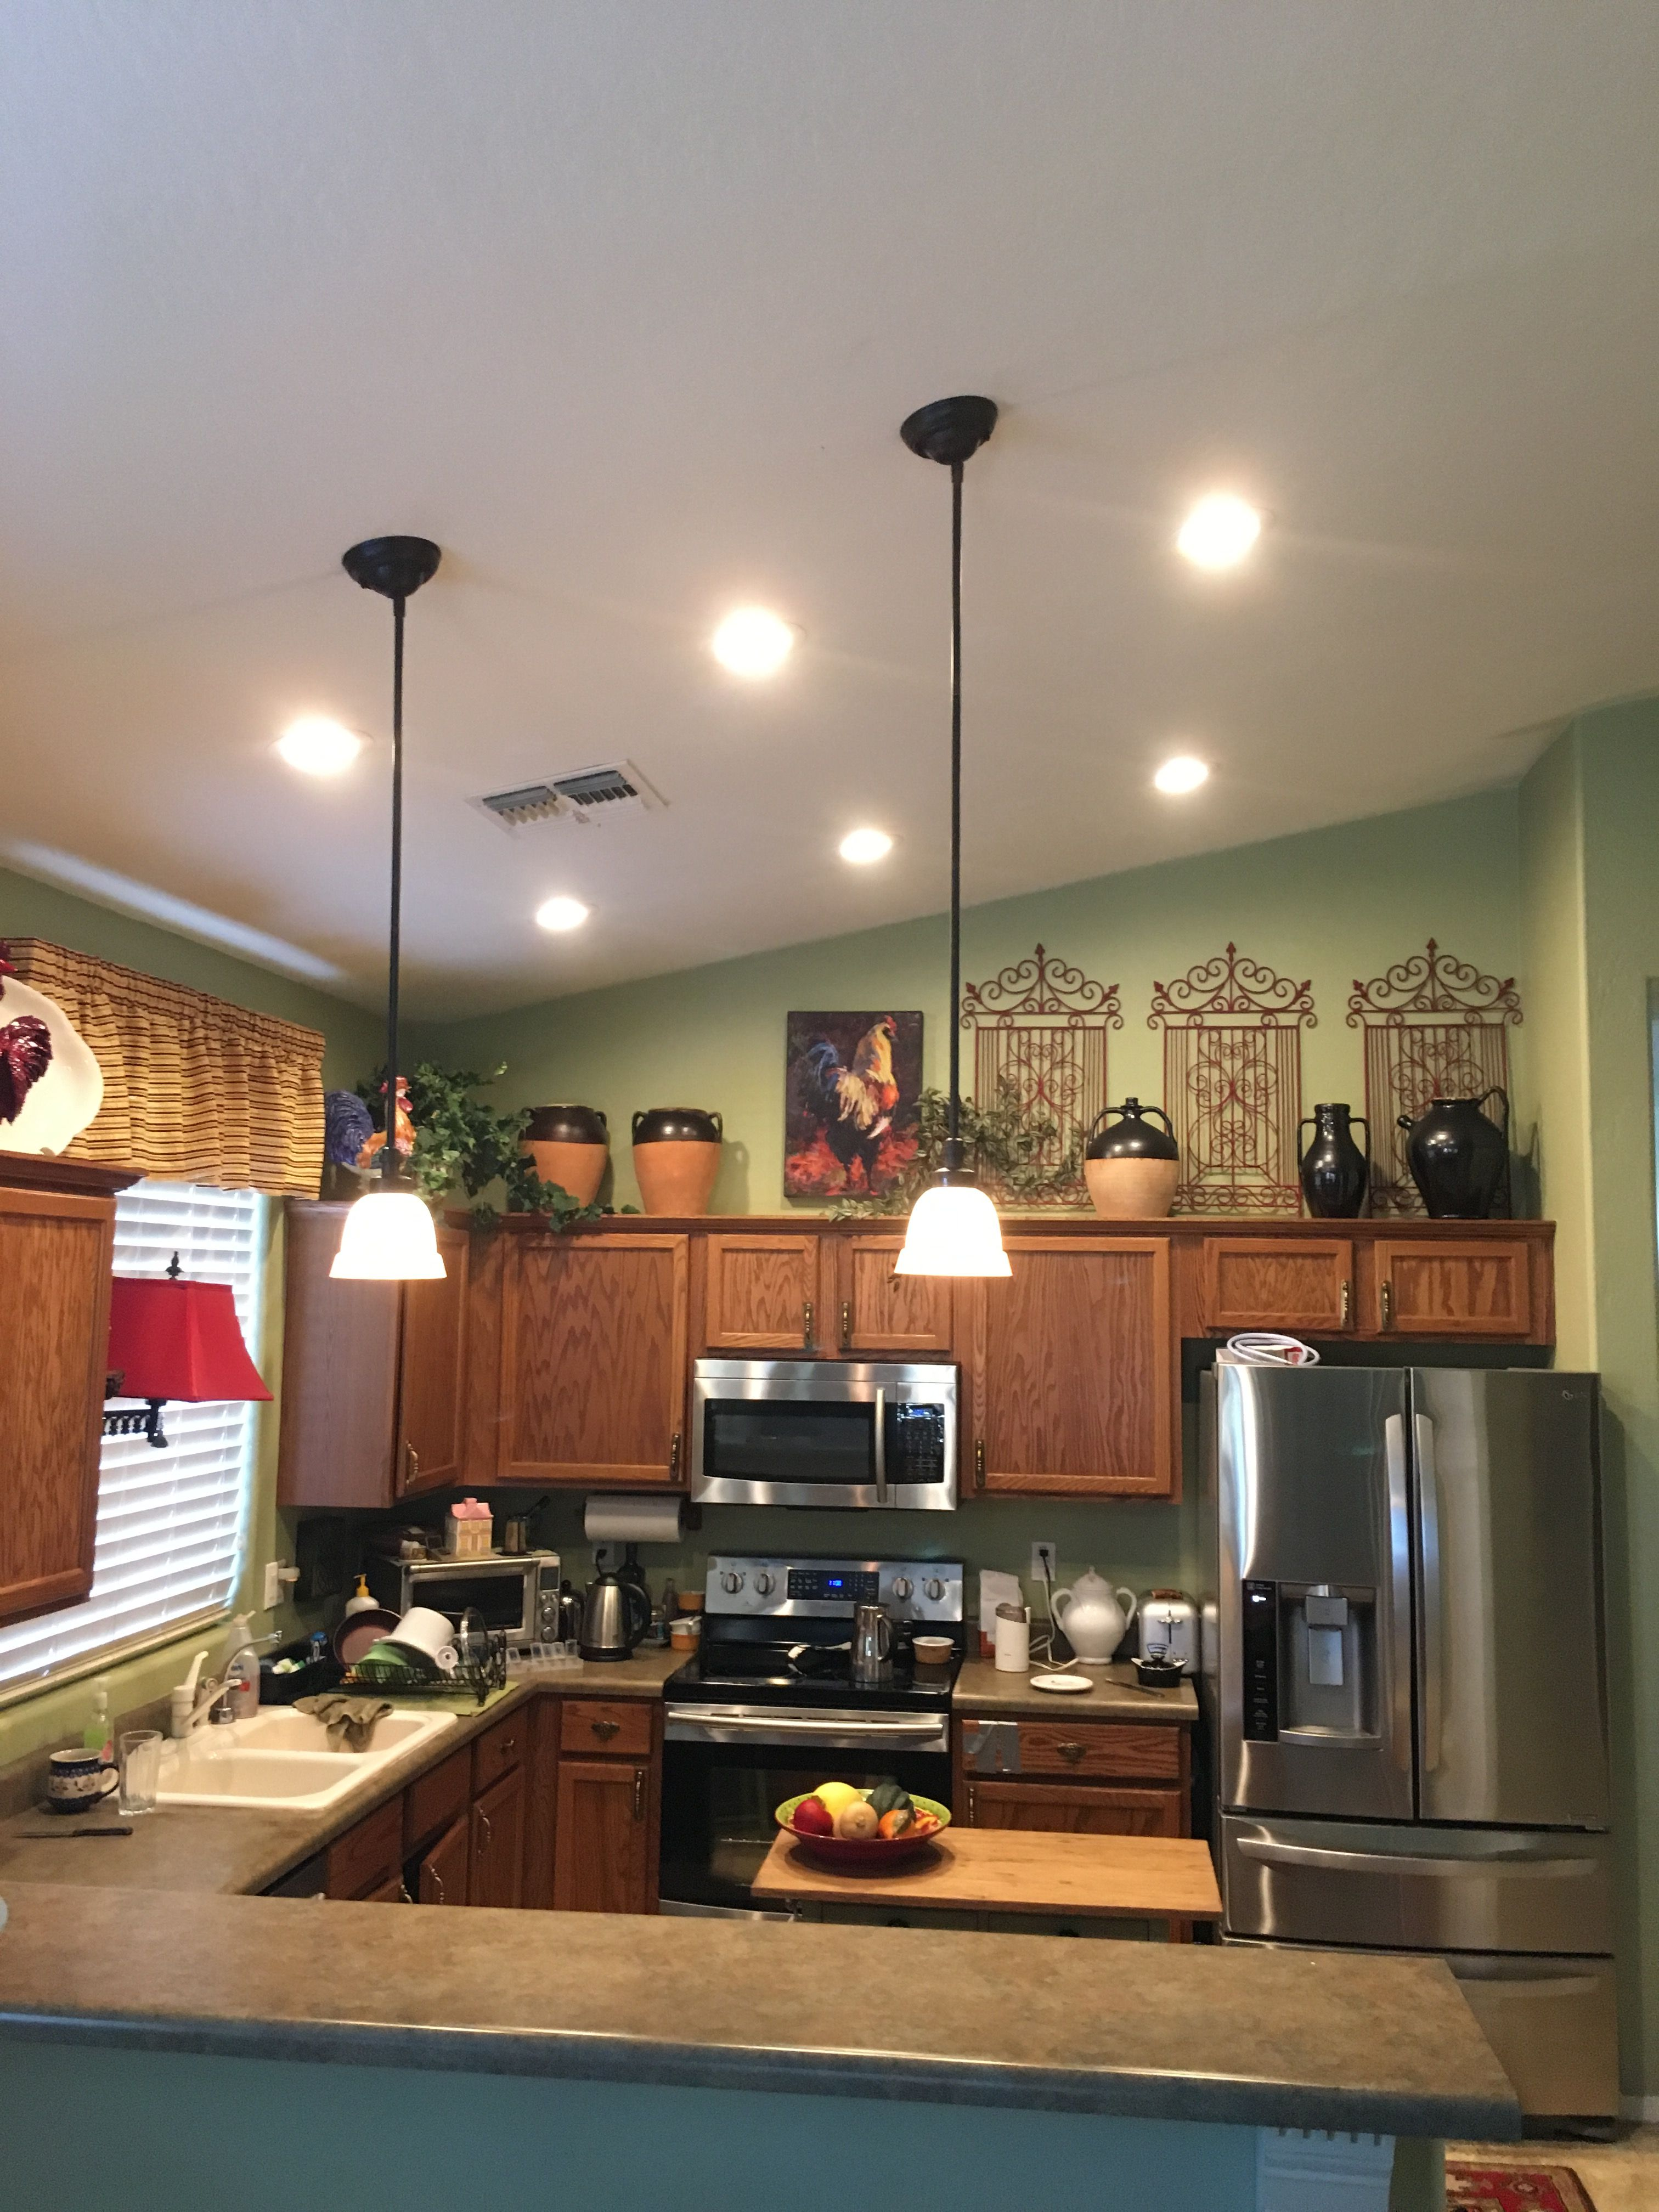 AZ Recessed Lighting installation of LEDs in kitchen. AZ Recessed ...